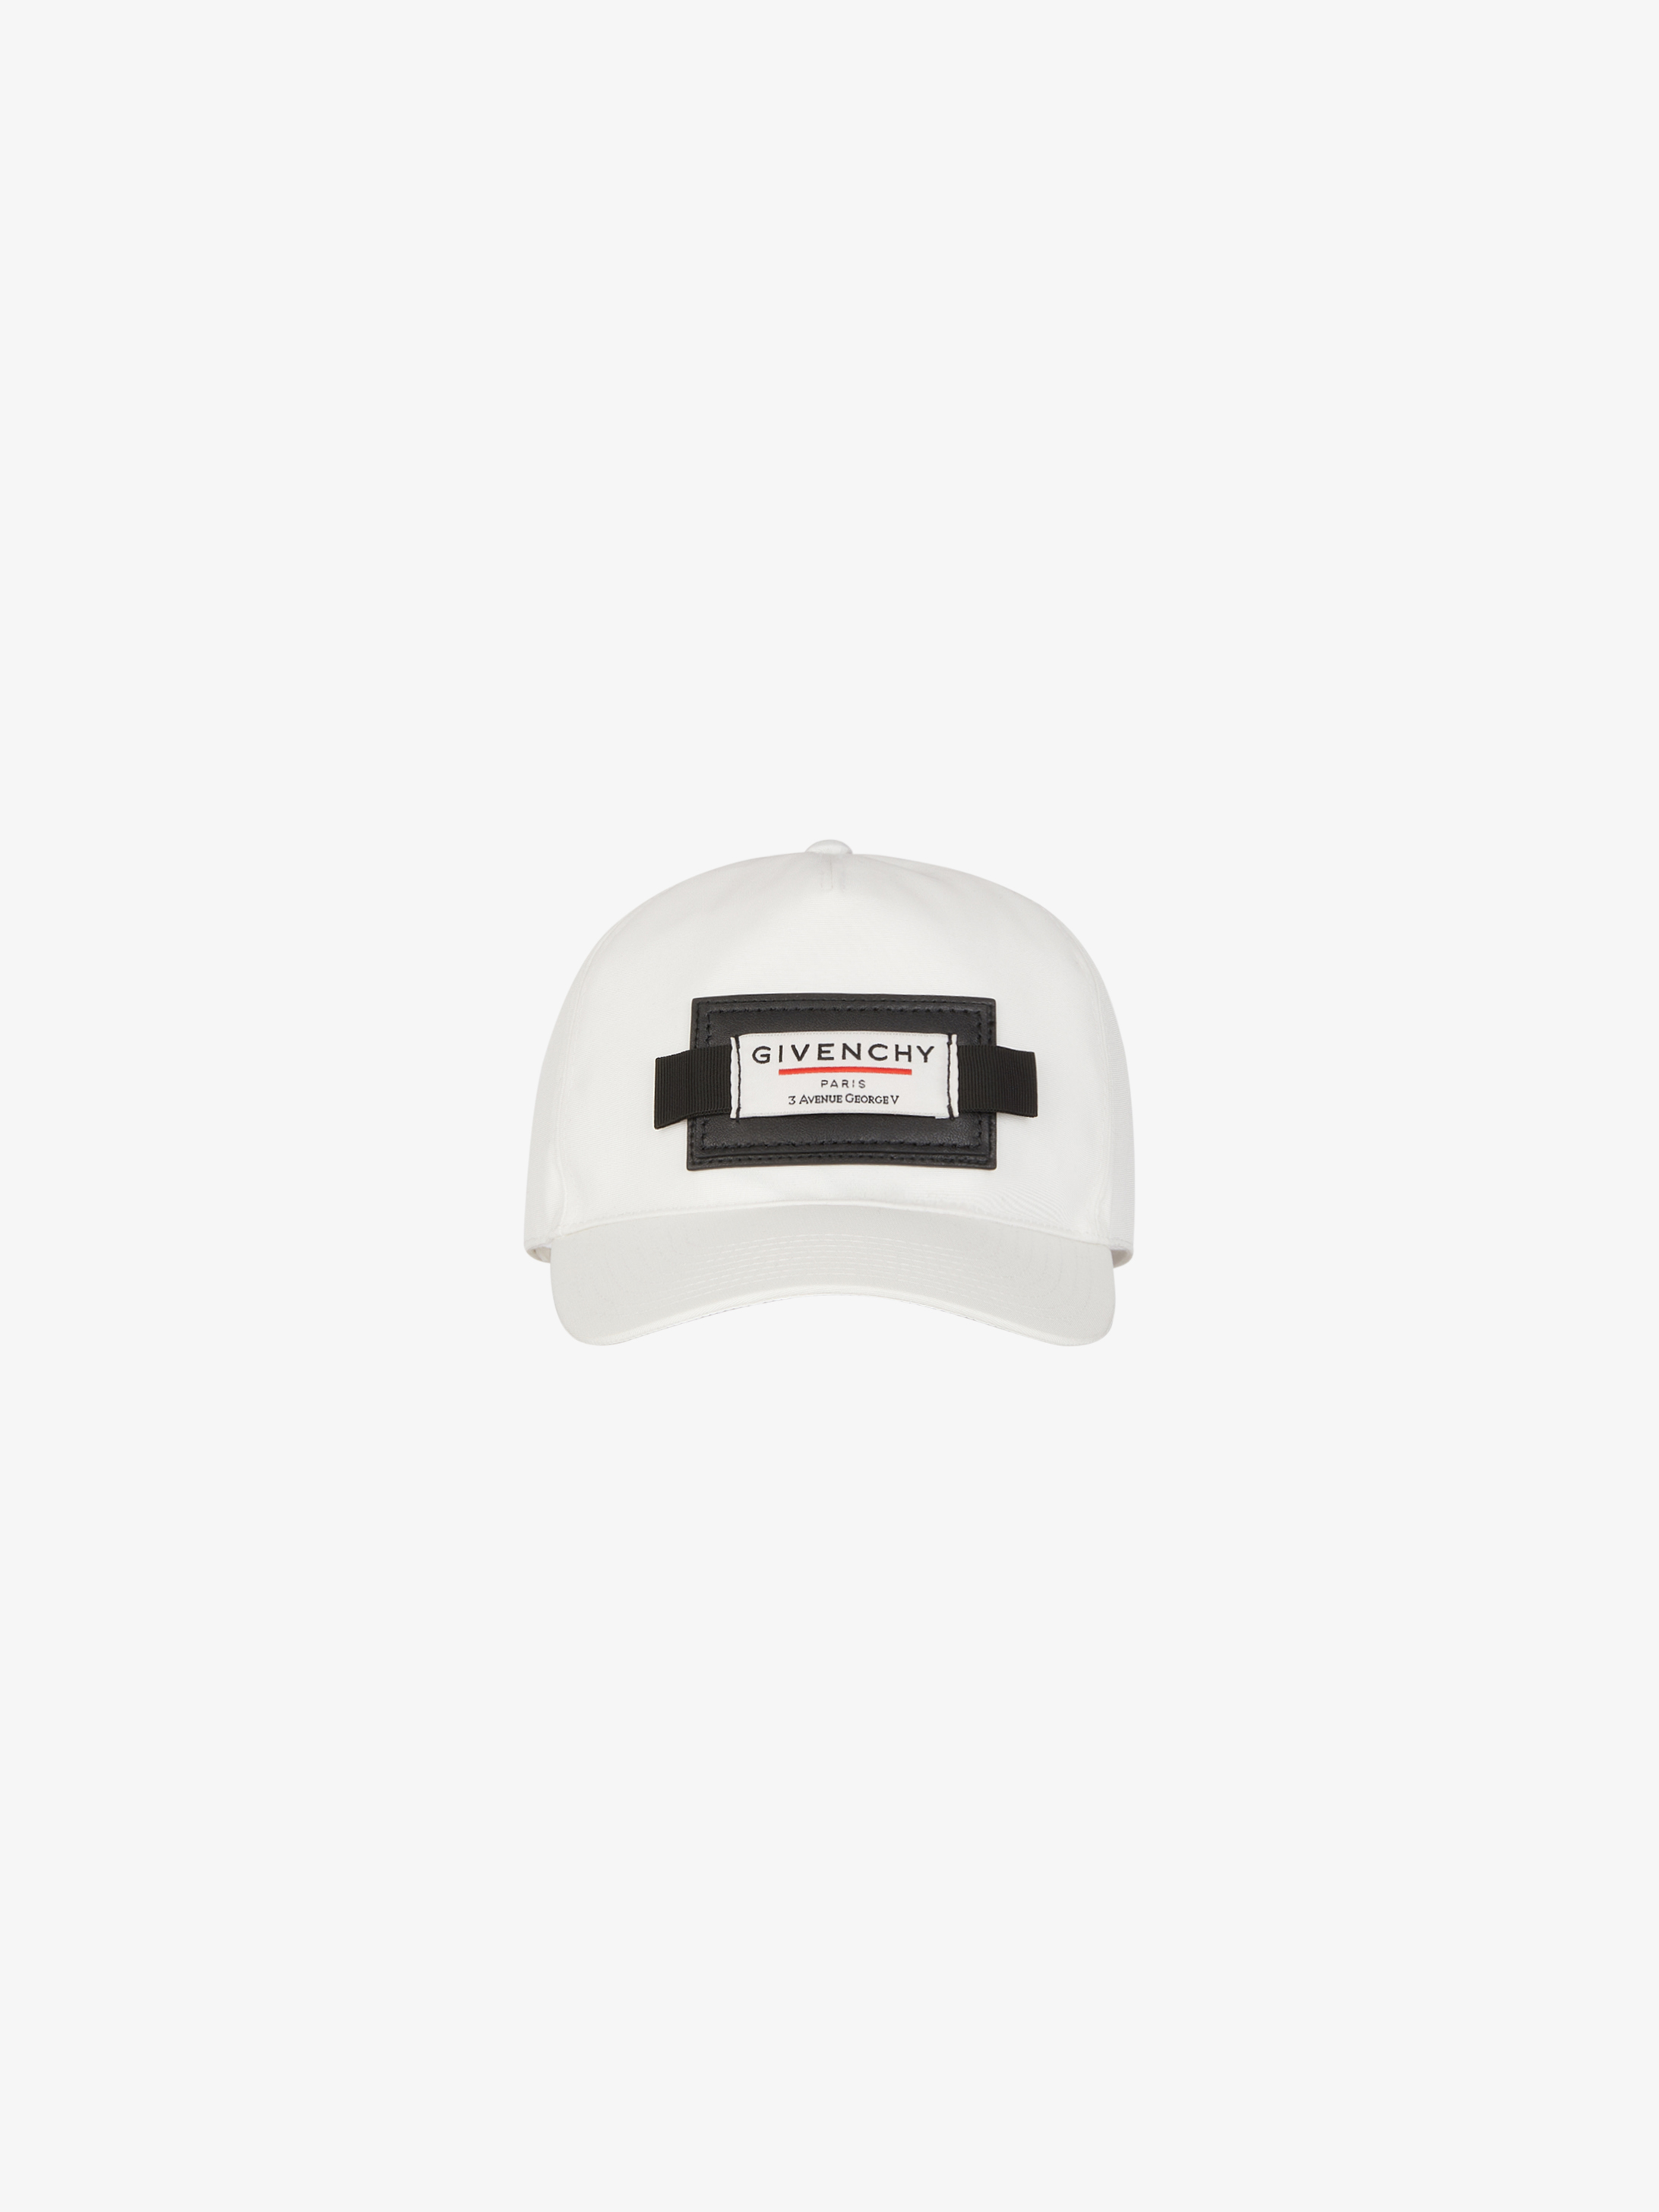 GIVENCHY Label cap with patch